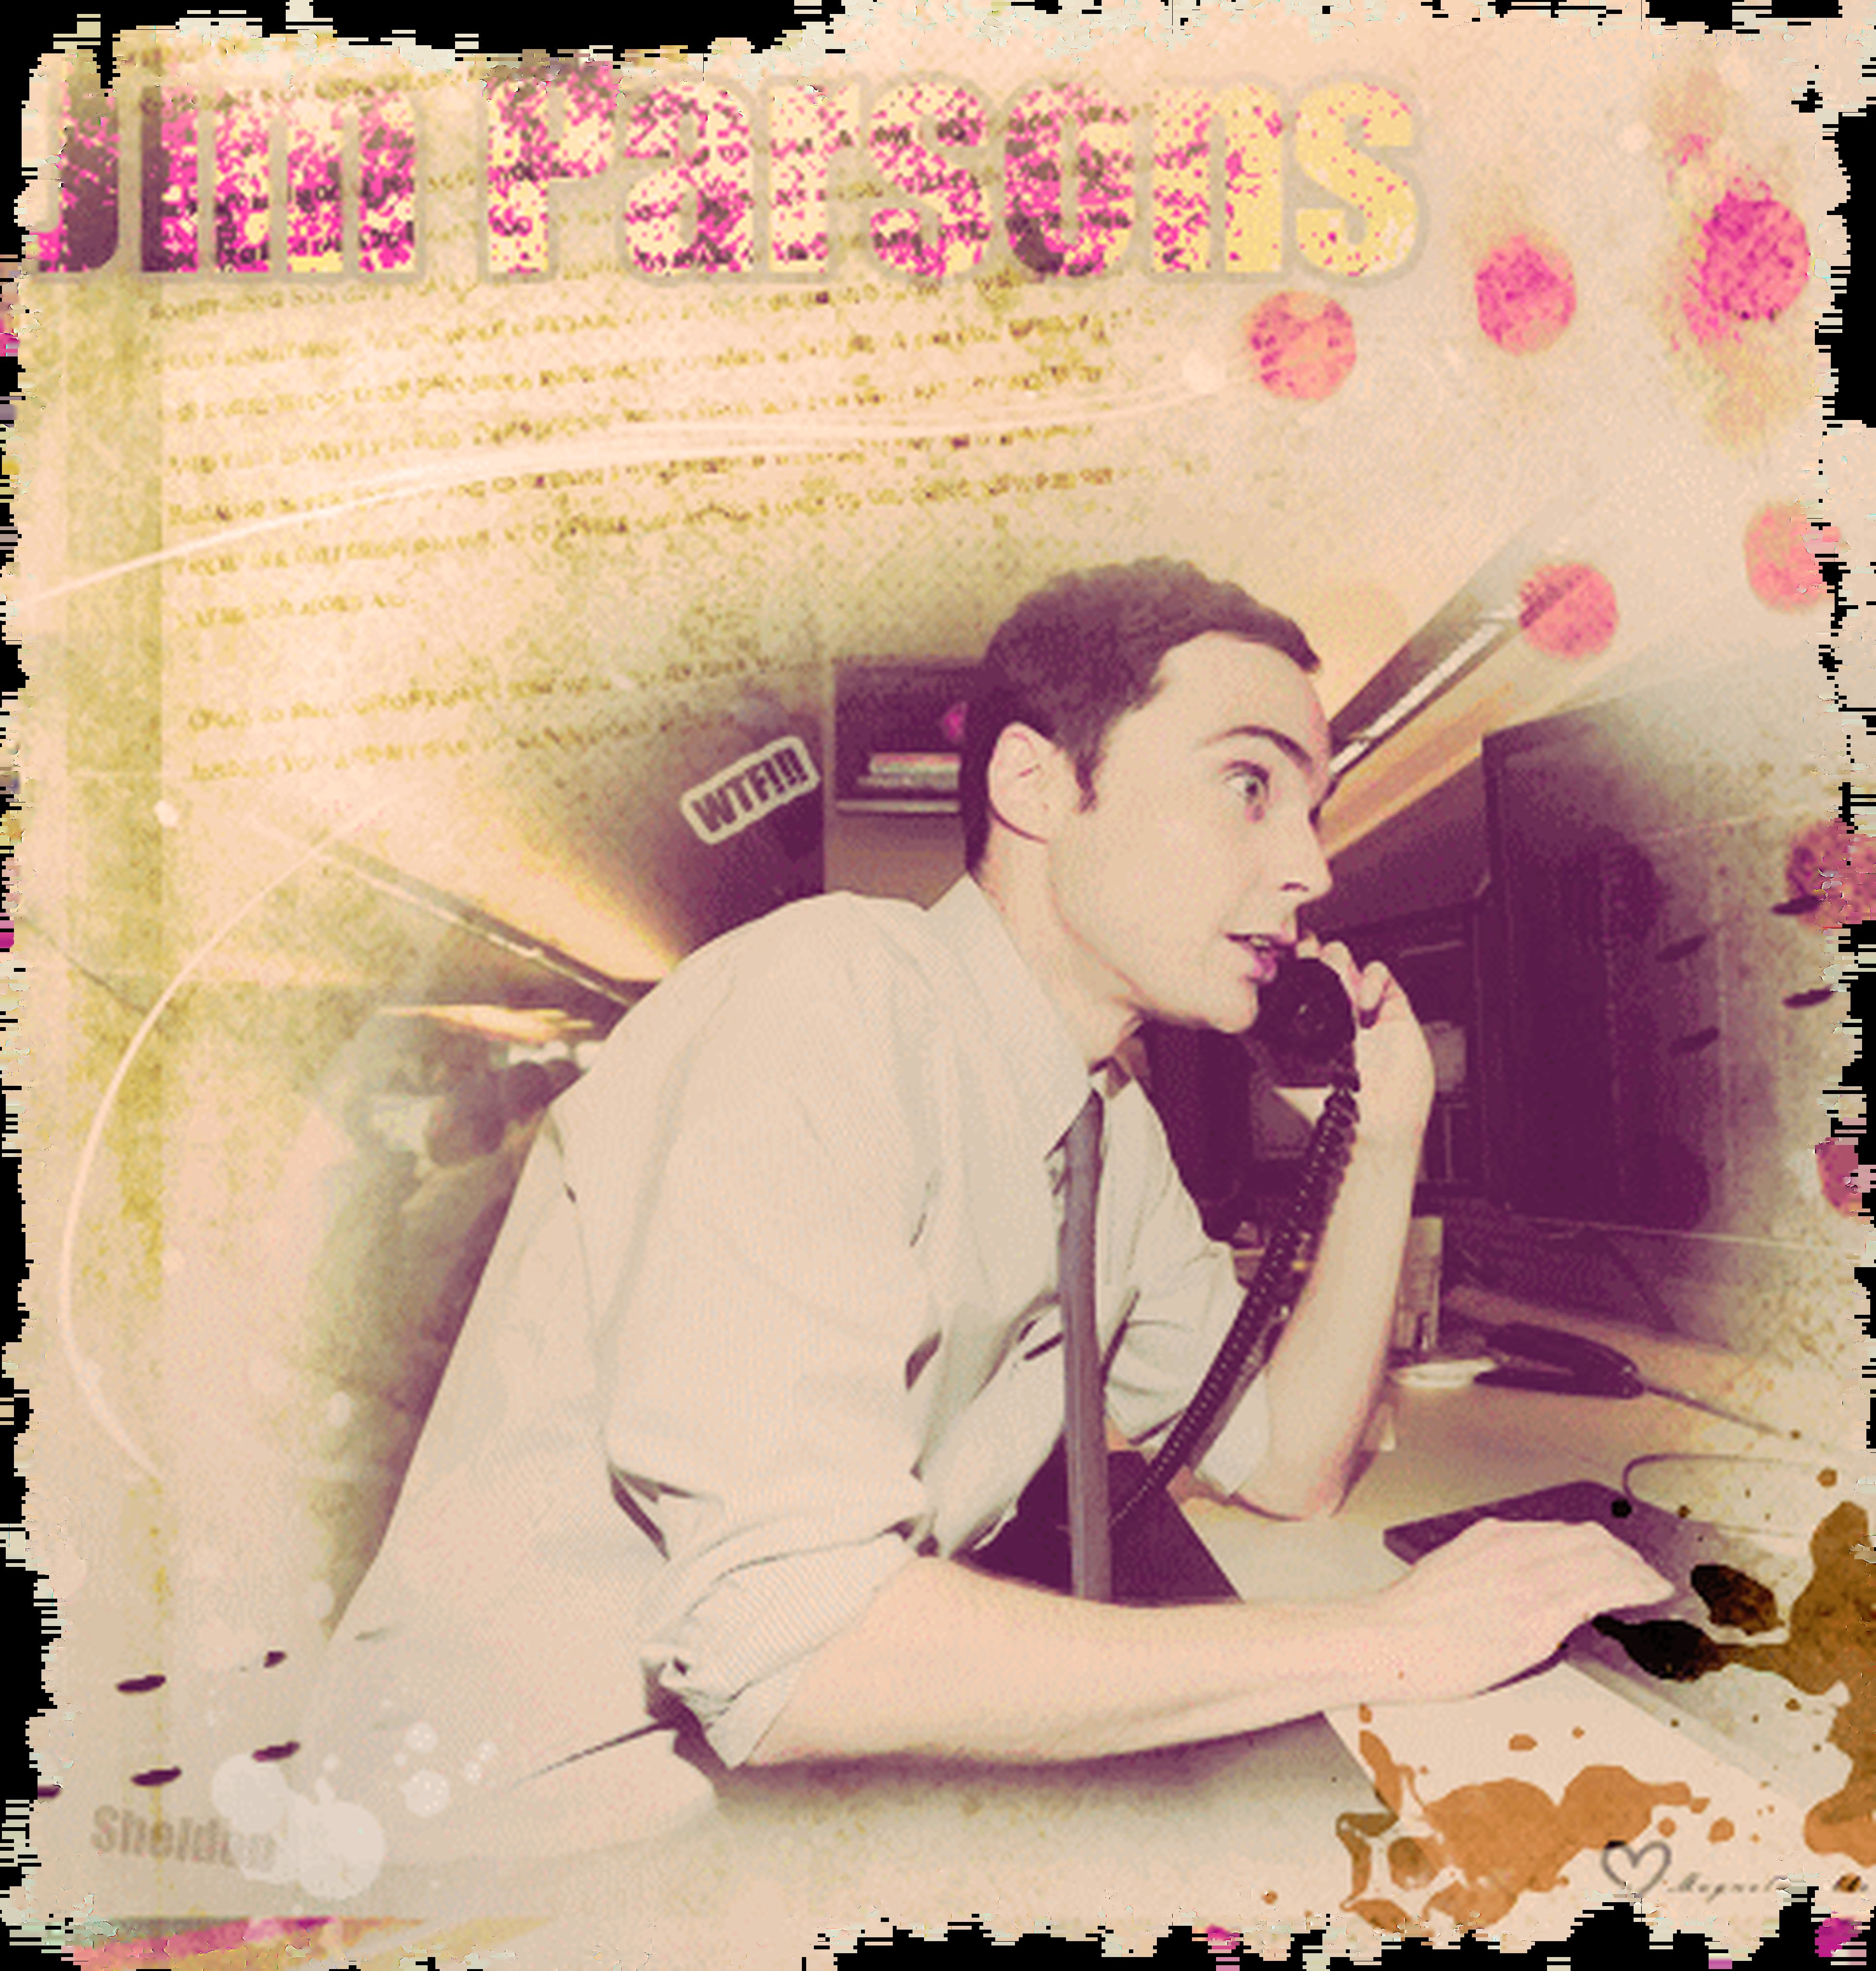 i made this blend years ago n_nU Jim Parsons as SHELDON COOPER in Tbbt The Big Bang Theory